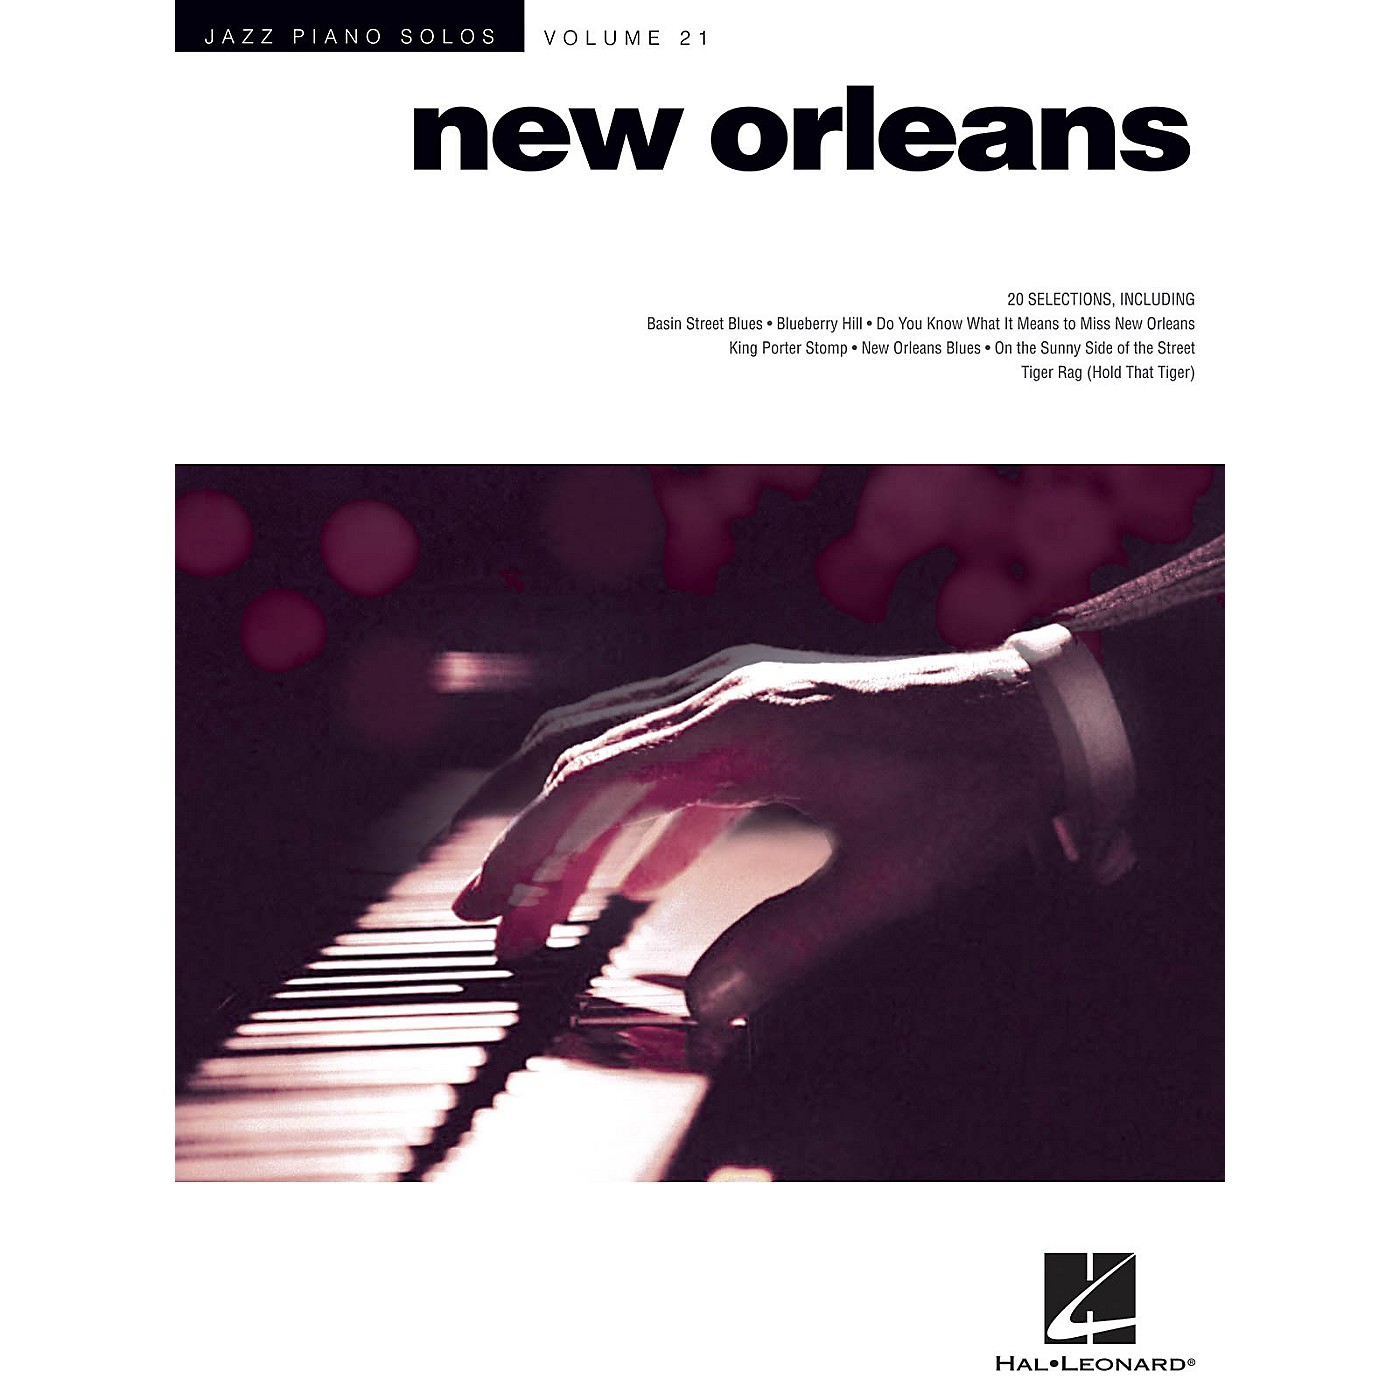 Hal Leonard New Orleans - Jazz Piano Solos Series Vol. 21 thumbnail